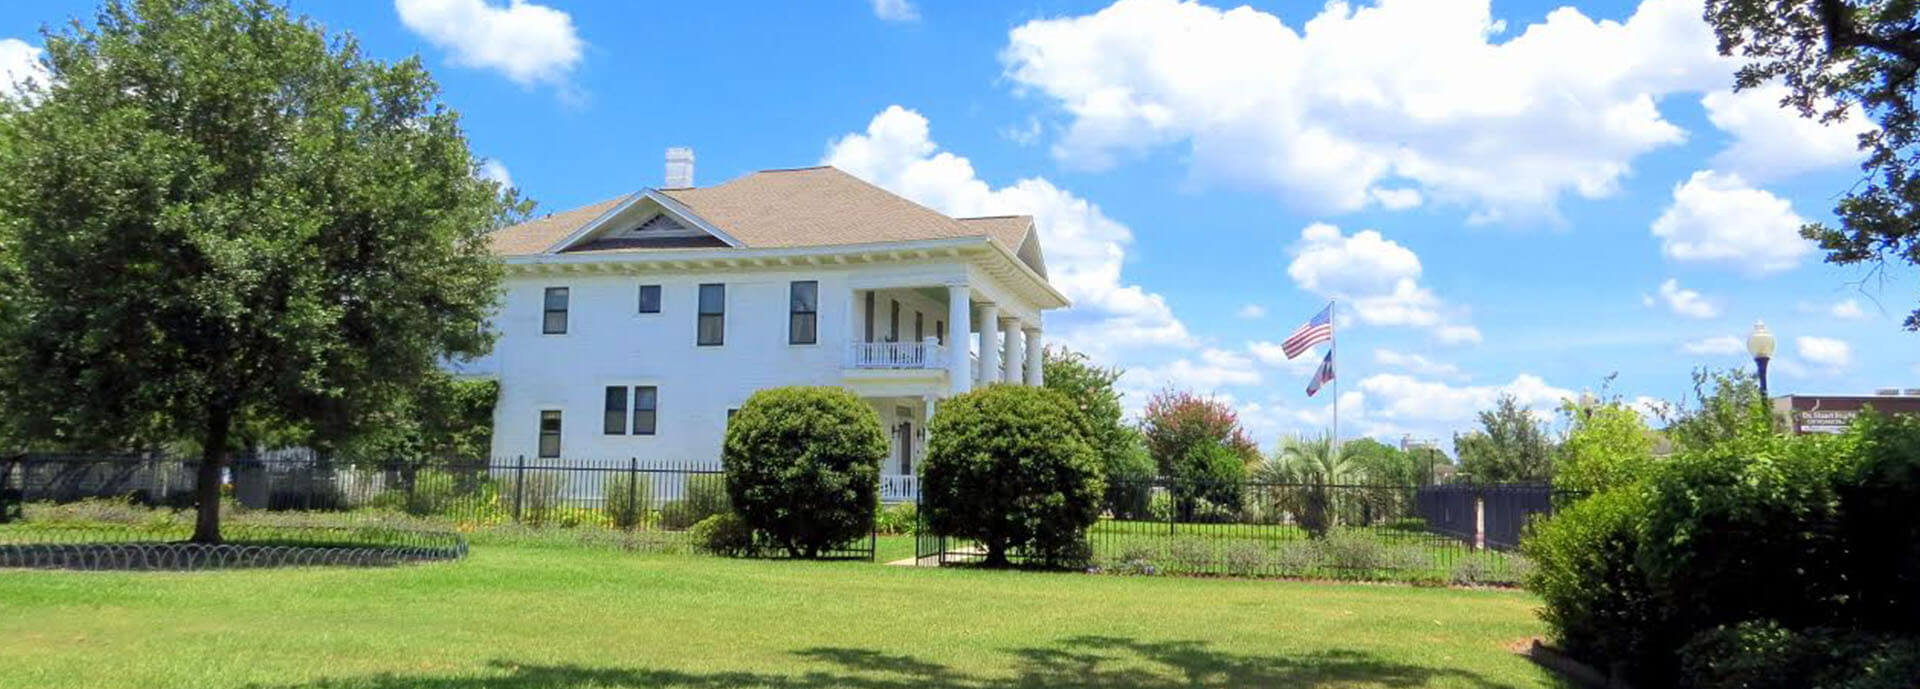 Chambers-House-Beaumont-Texas